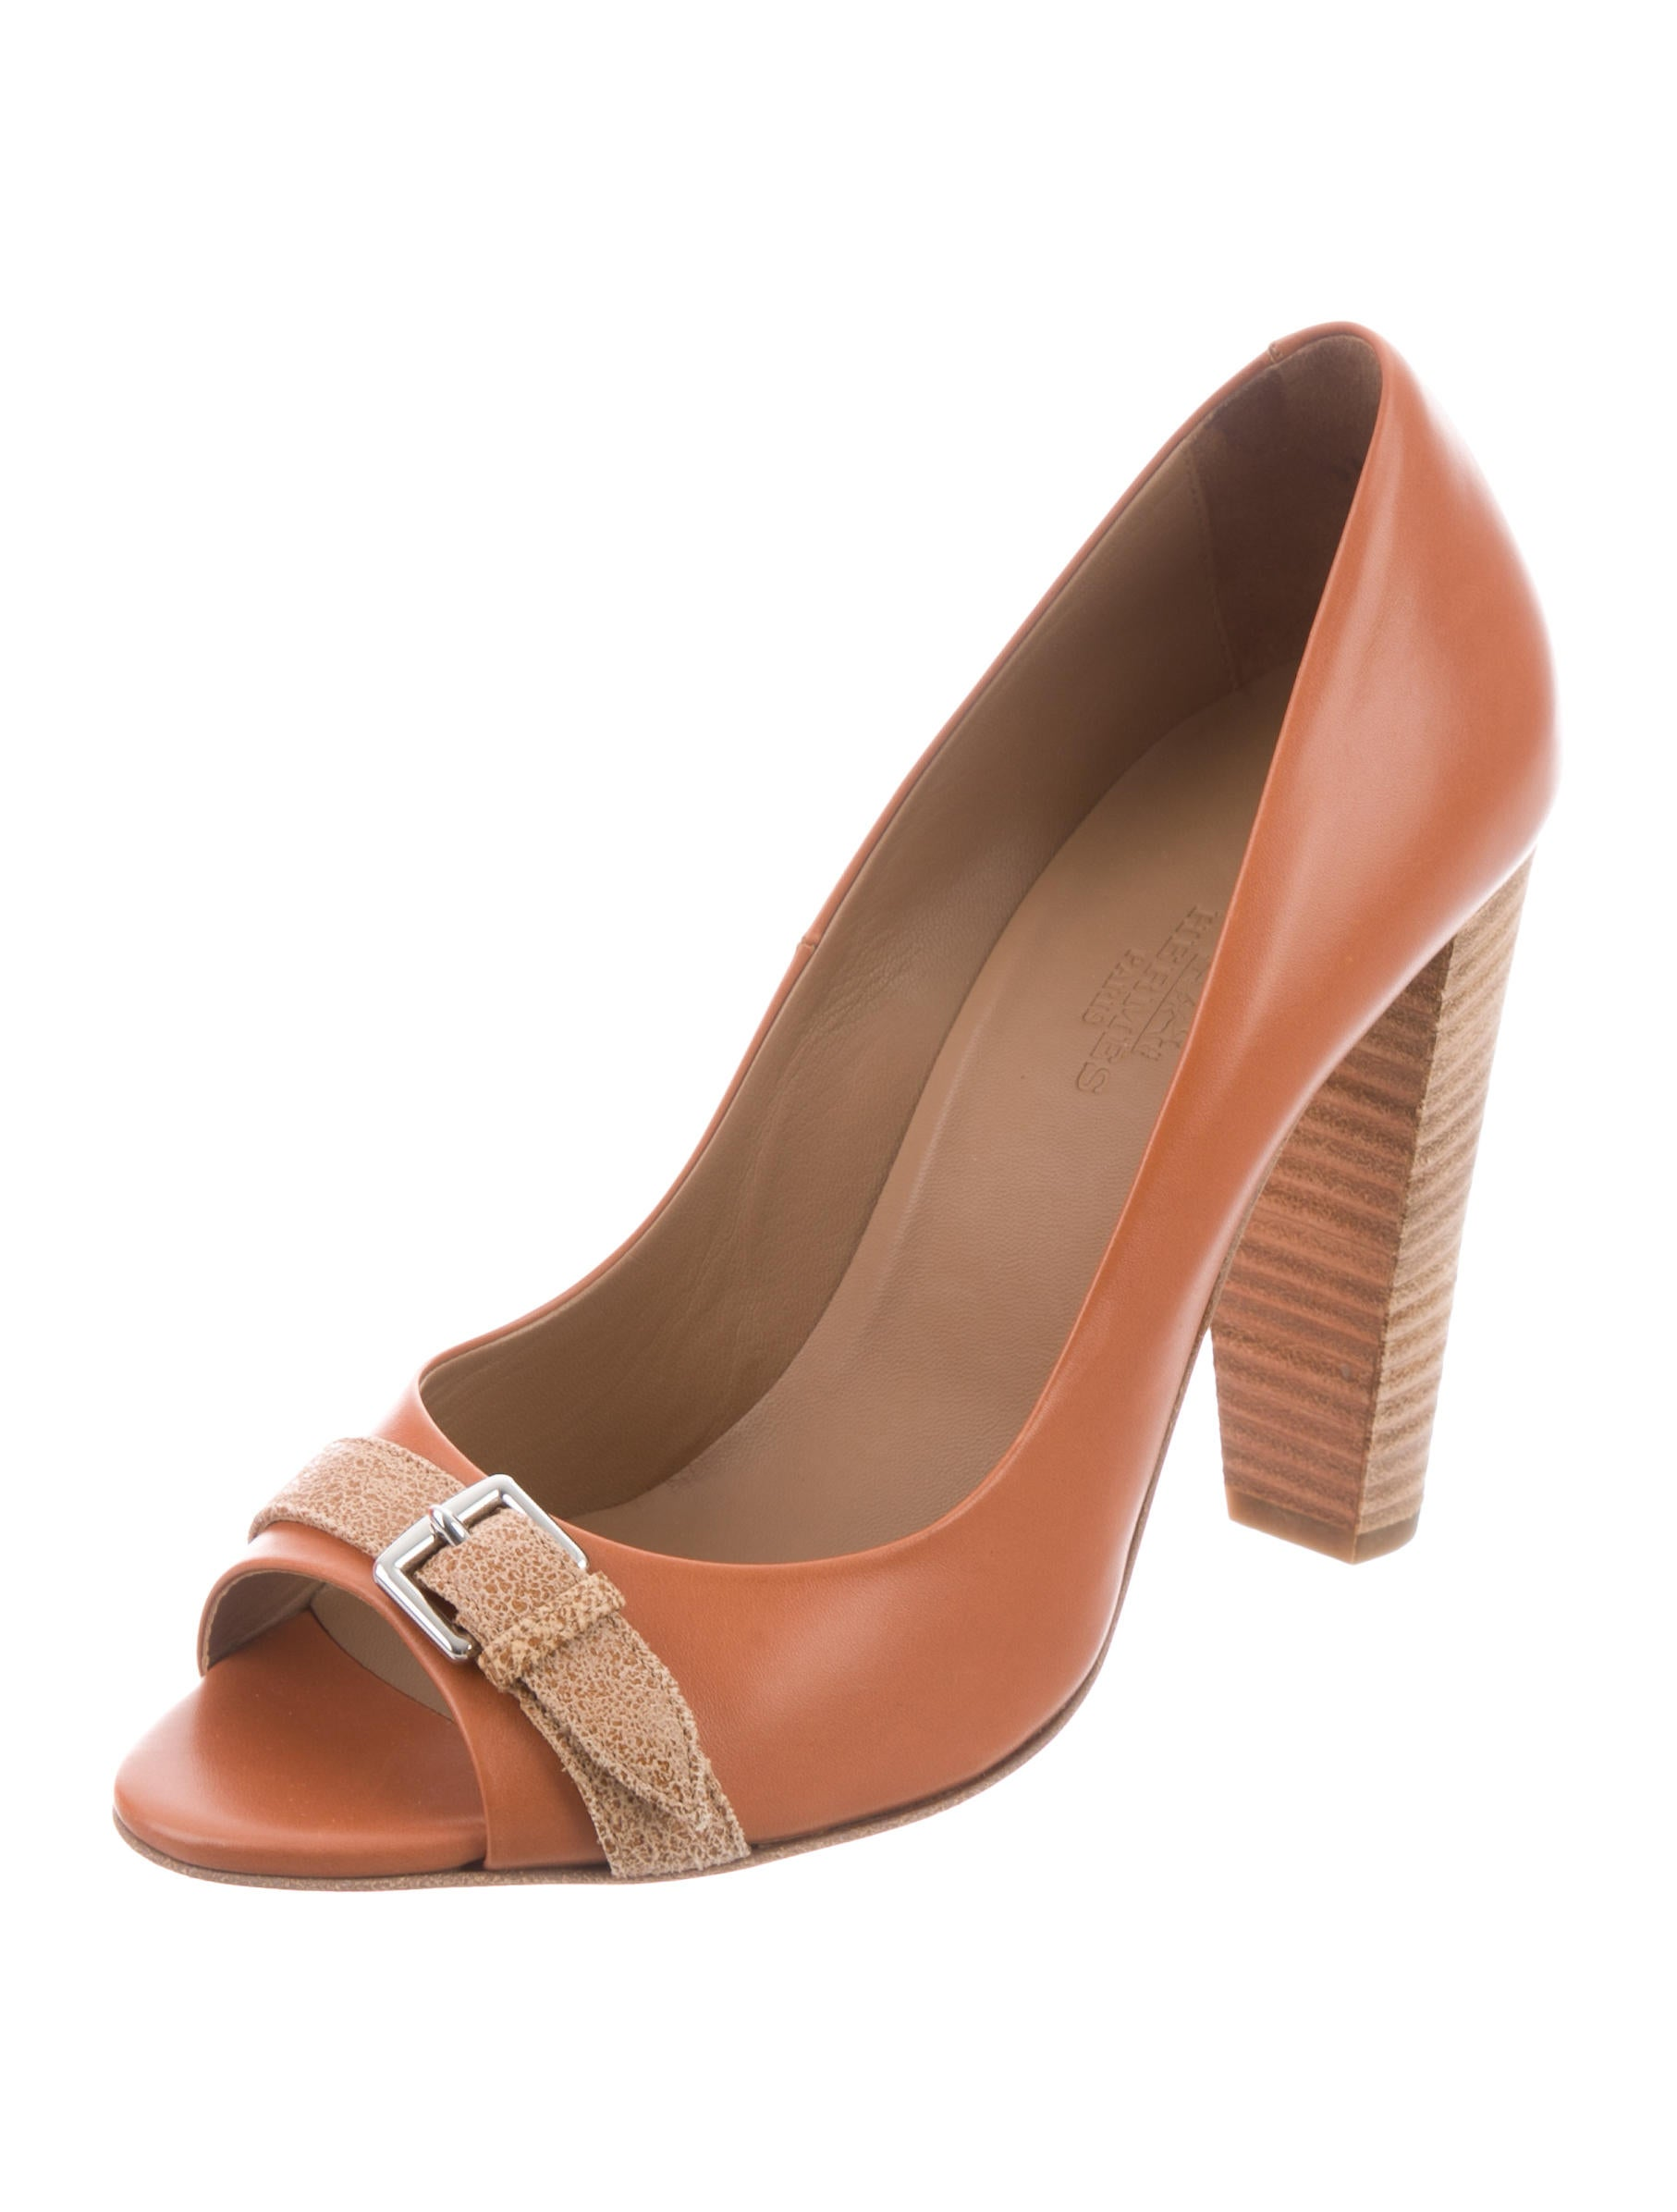 Hermès Envie Peep-Toe Pumps outlet largest supplier footlocker pictures cheap price cheap affordable hBn5h8OdQ